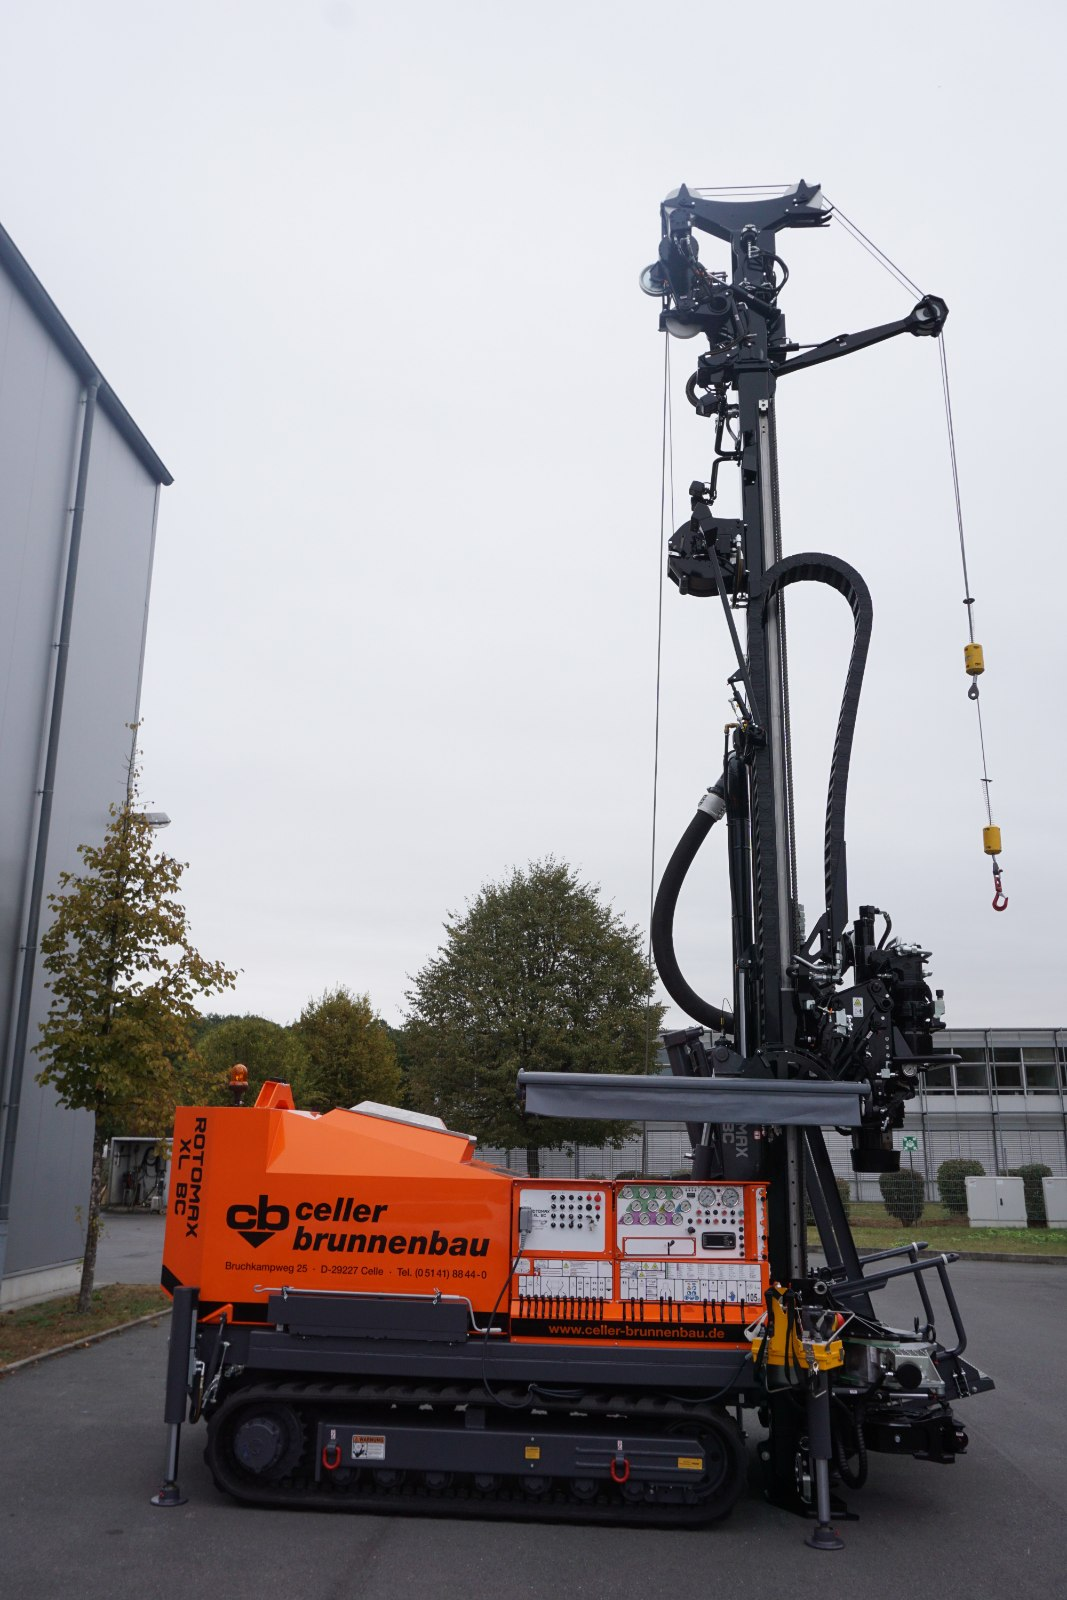 Geotec_Bohrtechnik_Drilling_Brunnenbau_Water_well_sinking_Rammkernbohrung_Percussion-core-drilling_Seilschlagwerk_Cable-striking-mechanism_Rotomax_XL_BC_01-DSC03125